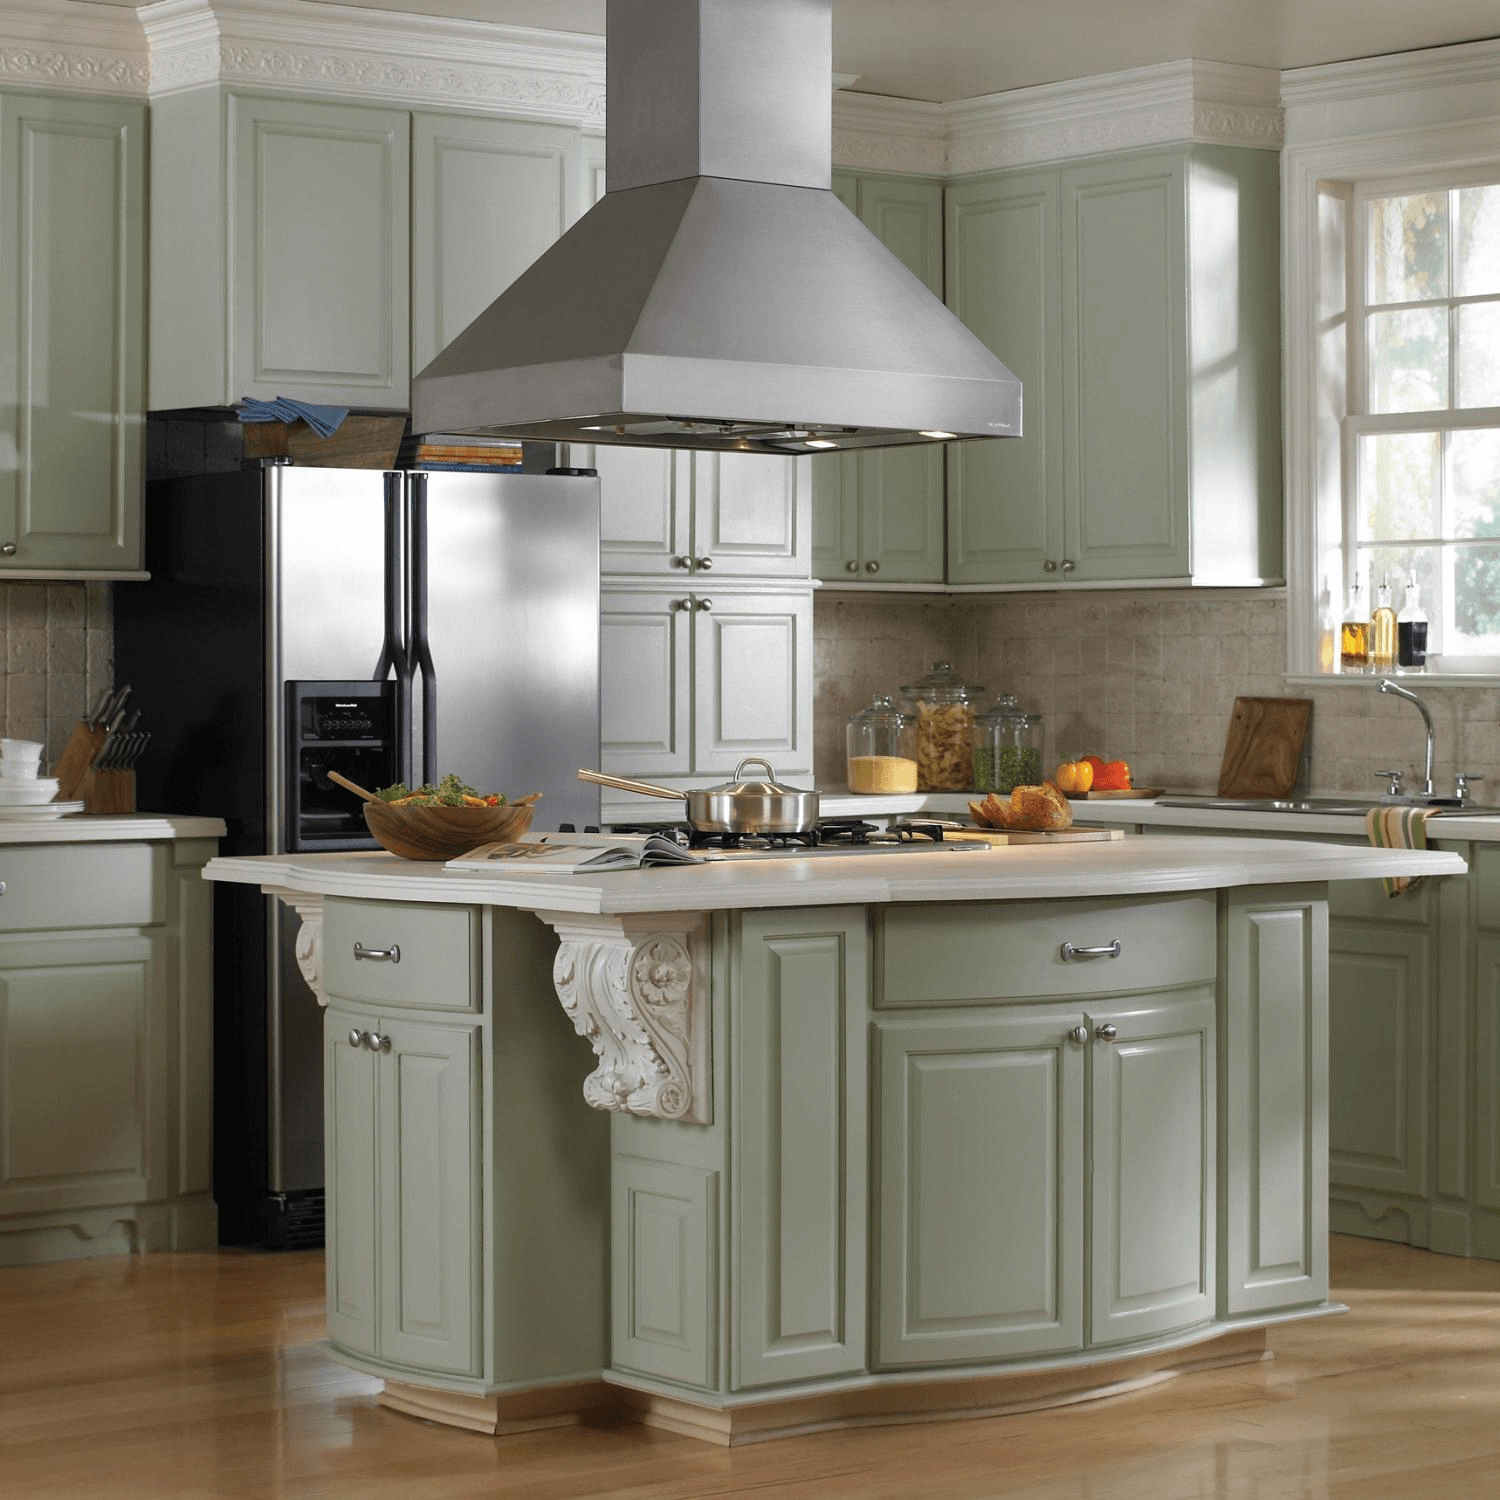 Kitchen Island Range Hoods Kitchen Island Hood Vent | Kitchen In 2019 | Kitchen